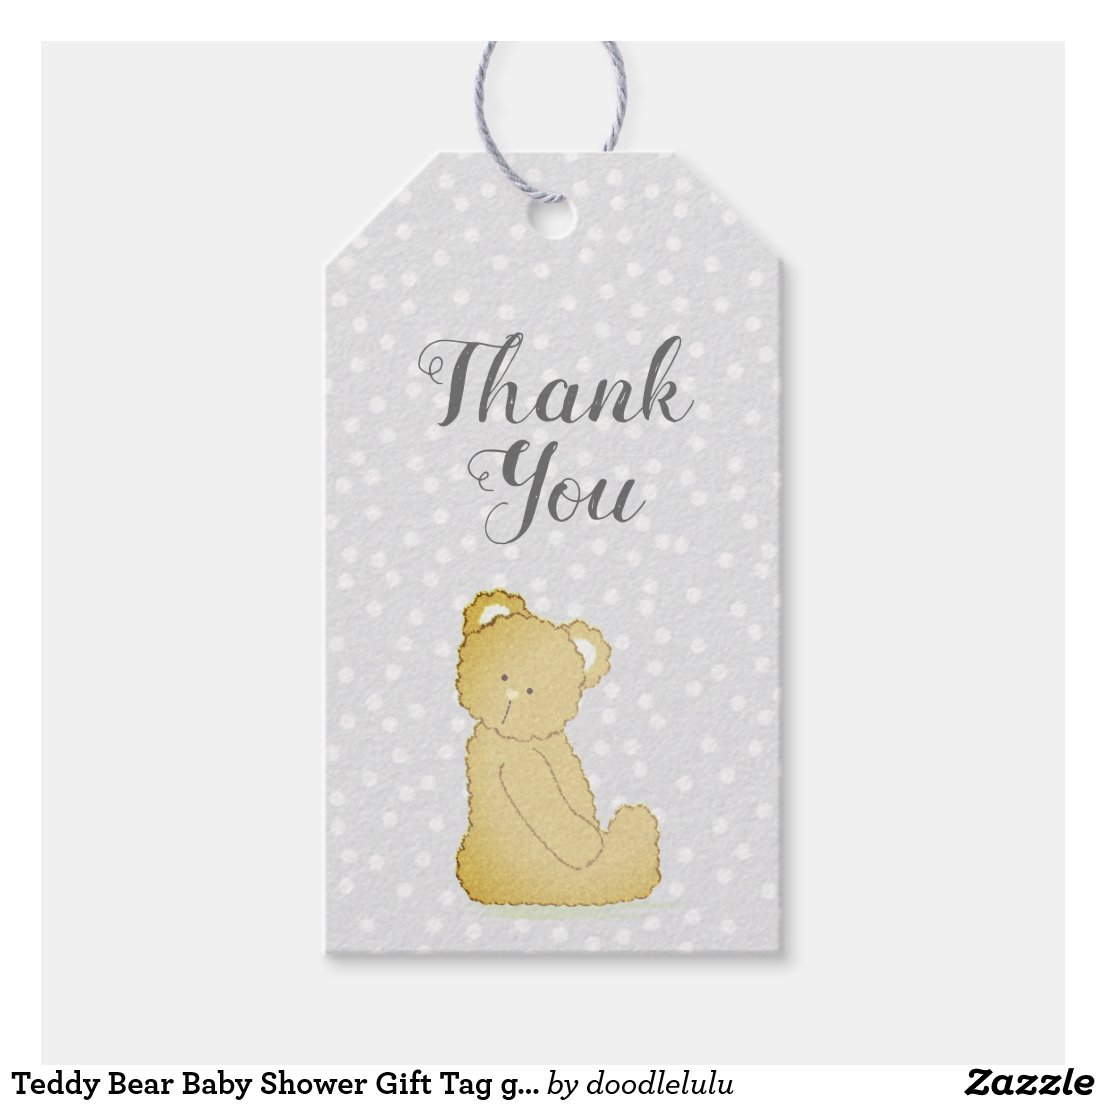 Teddy Bear Baby Shower Gift Tag gray and brown